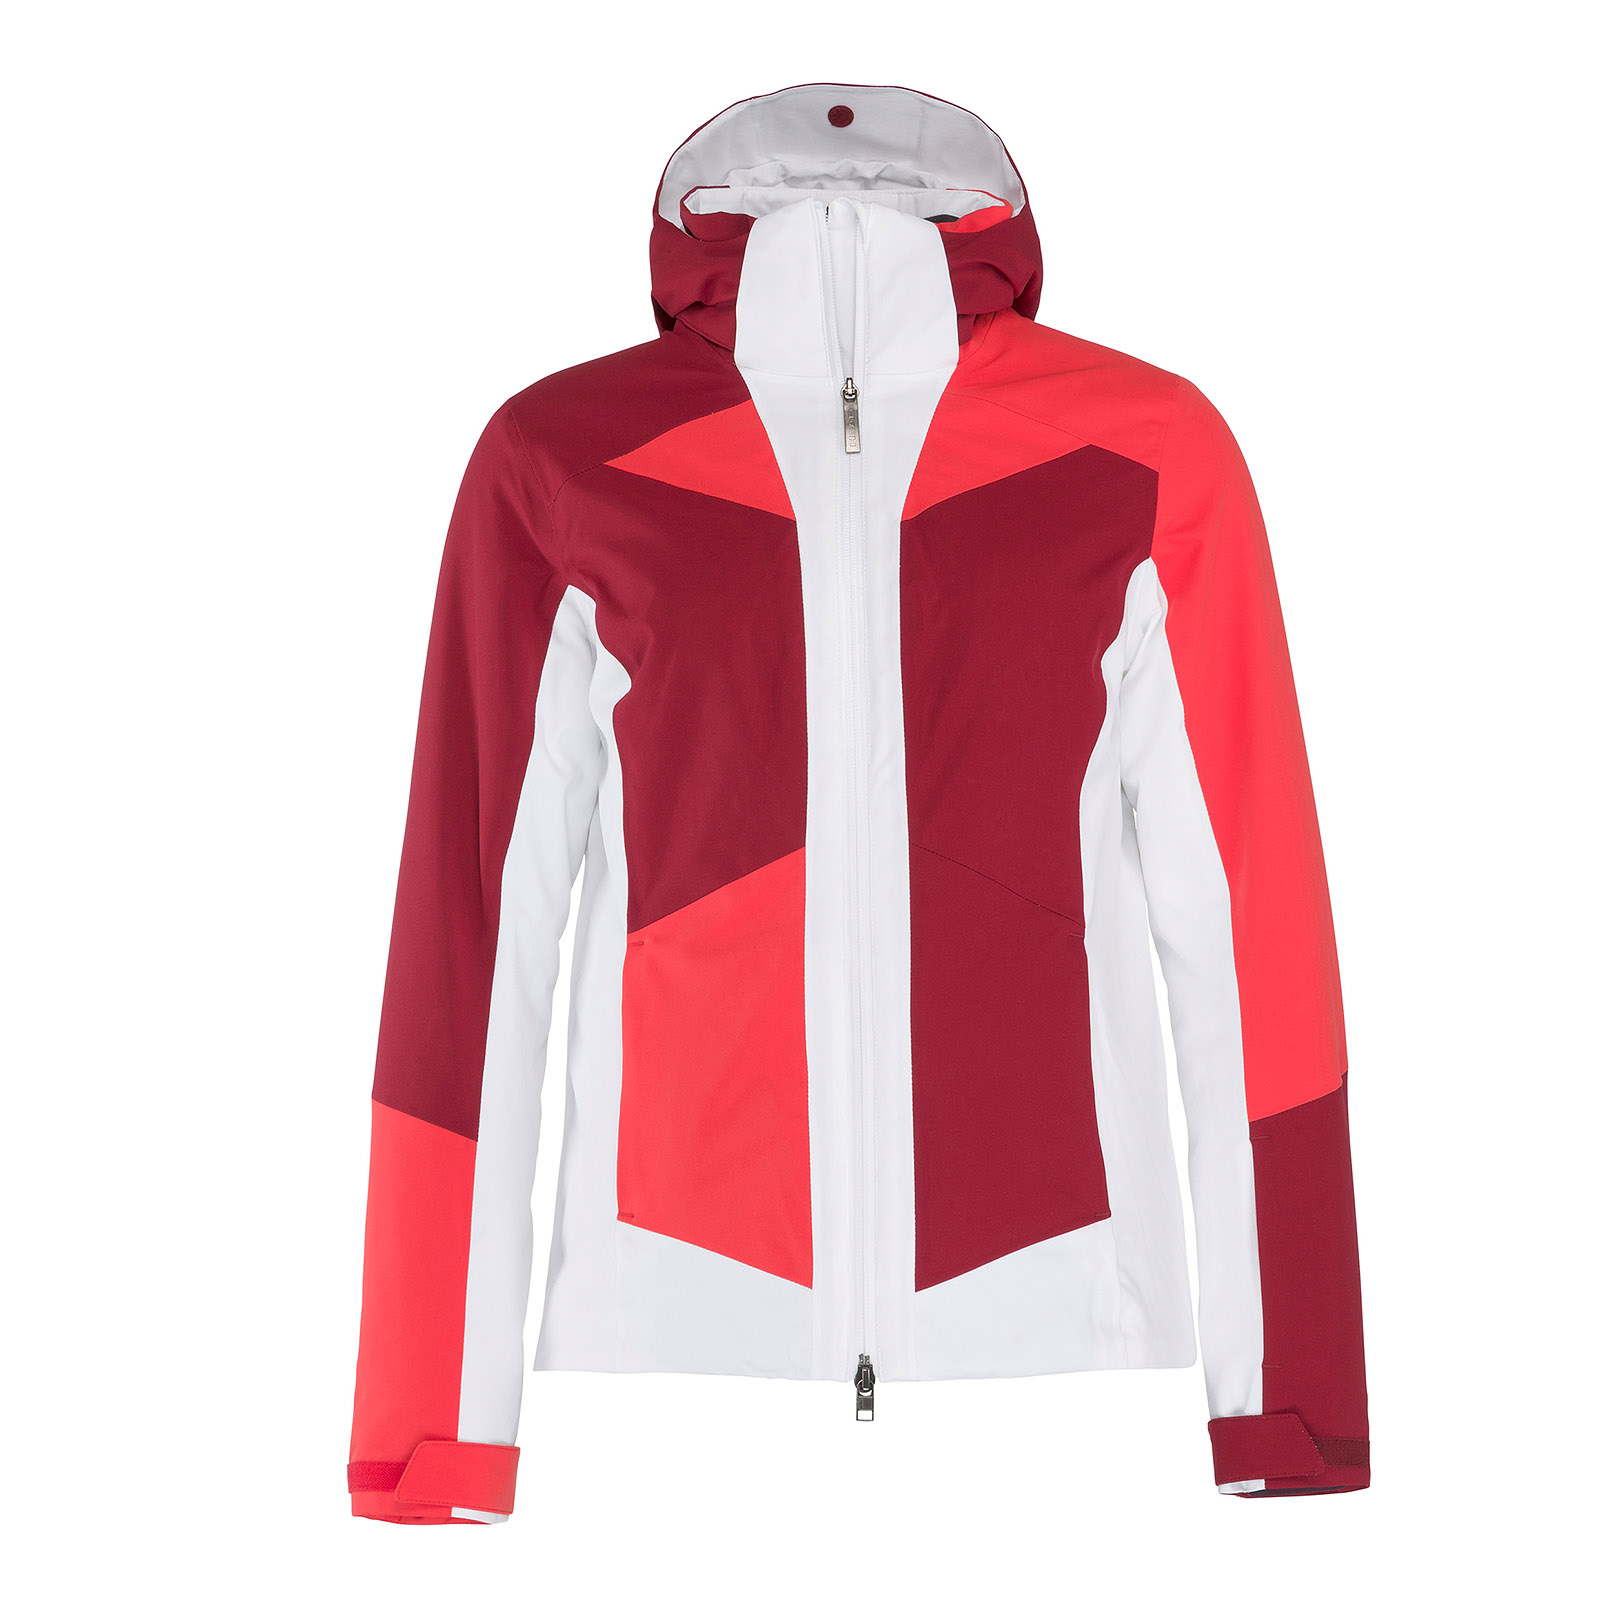 HEAD Sierra Jacket W - (red/white) - 2019